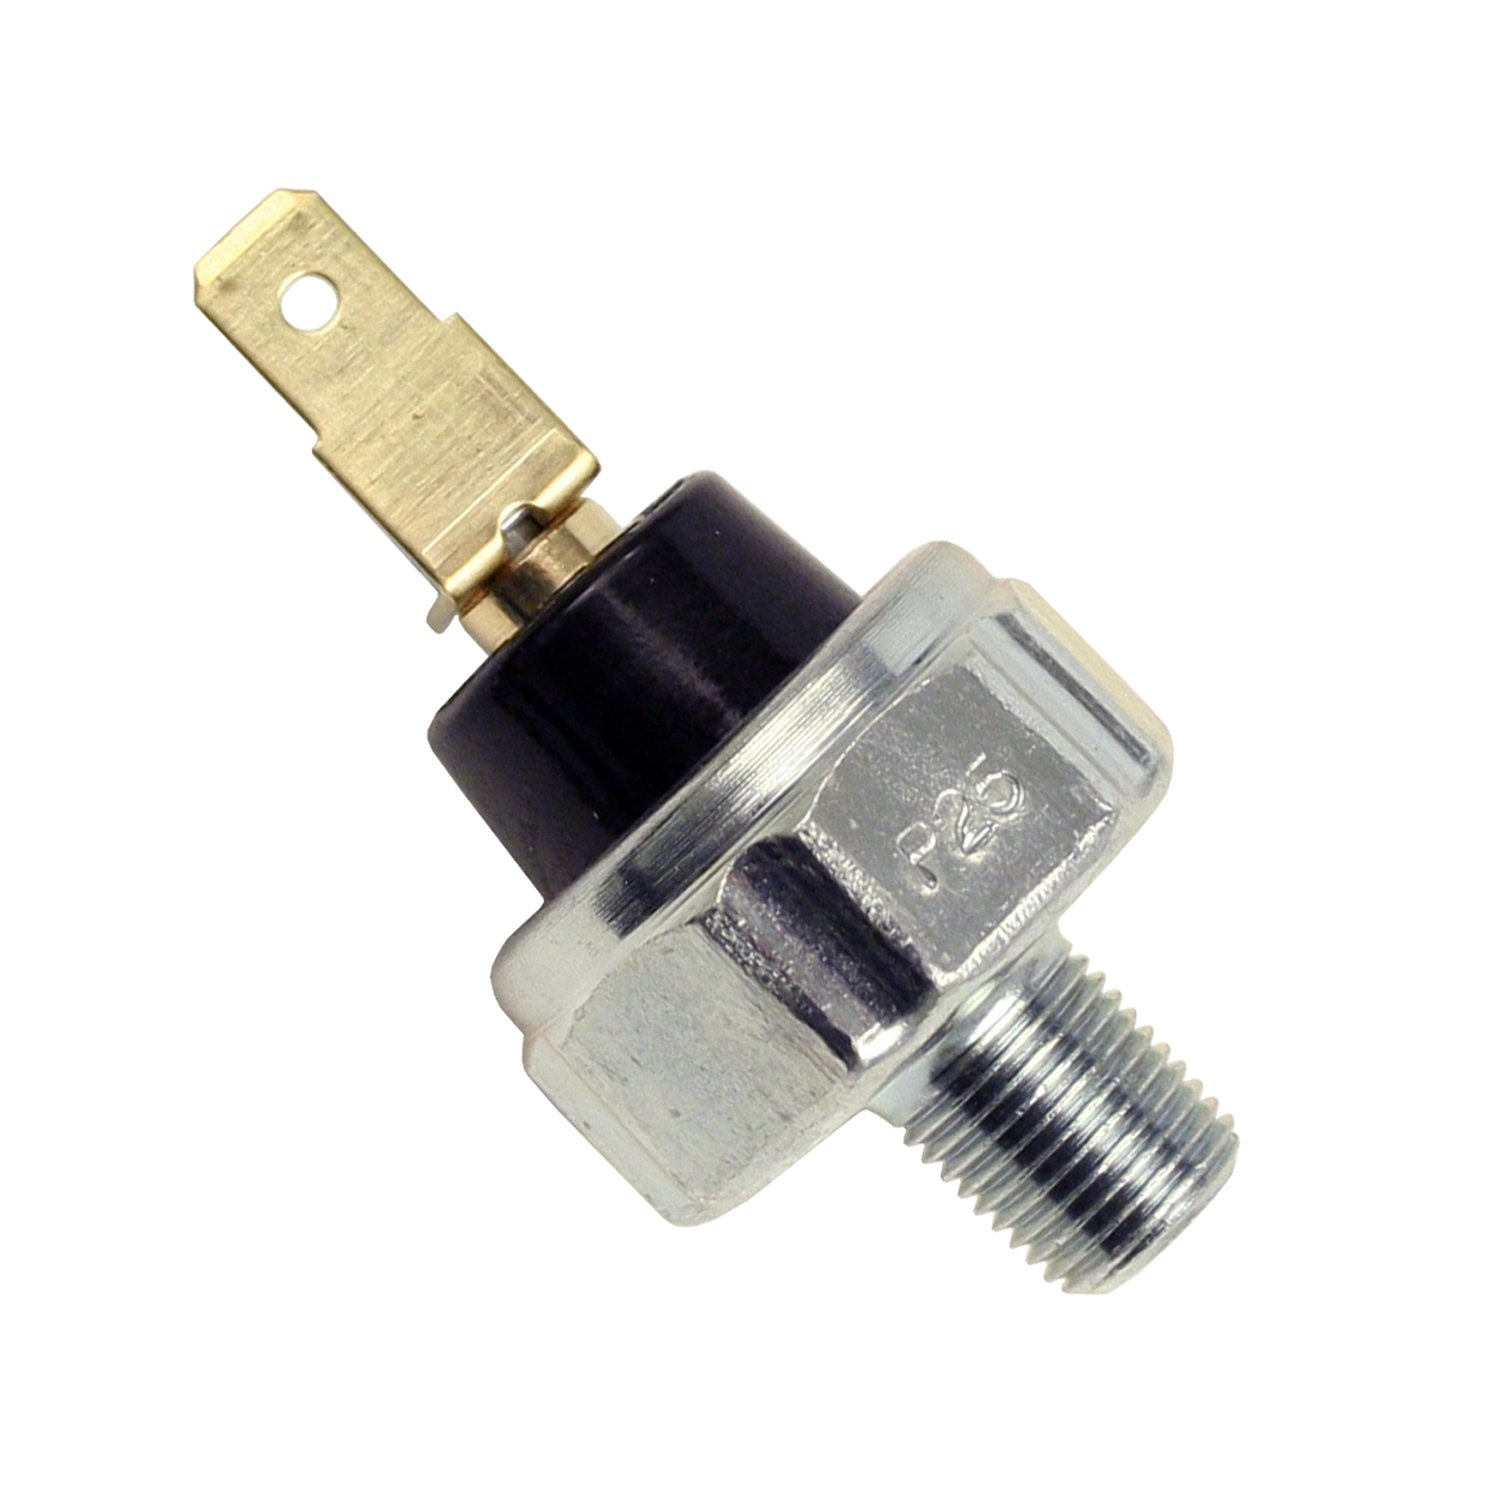 Beck Arnley 201-0445 Oil Pressure Switch With Light BEC201-0445